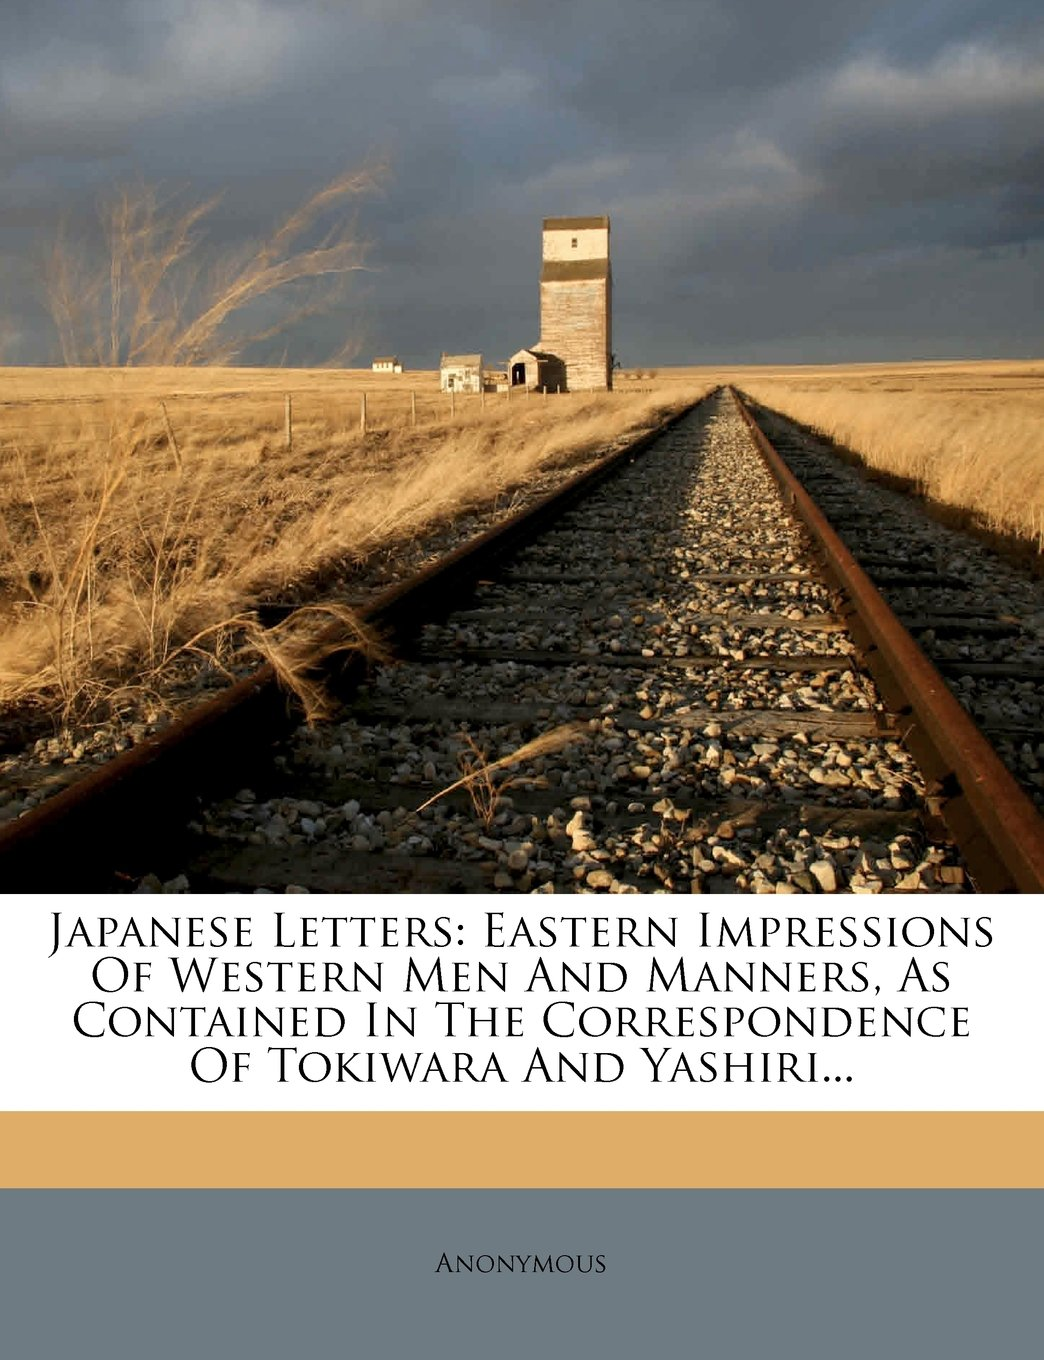 Japanese Letters: Eastern Impressions Of Western Men And Manners, As Contained In The Correspondence Of Tokiwara And Yashiri... pdf